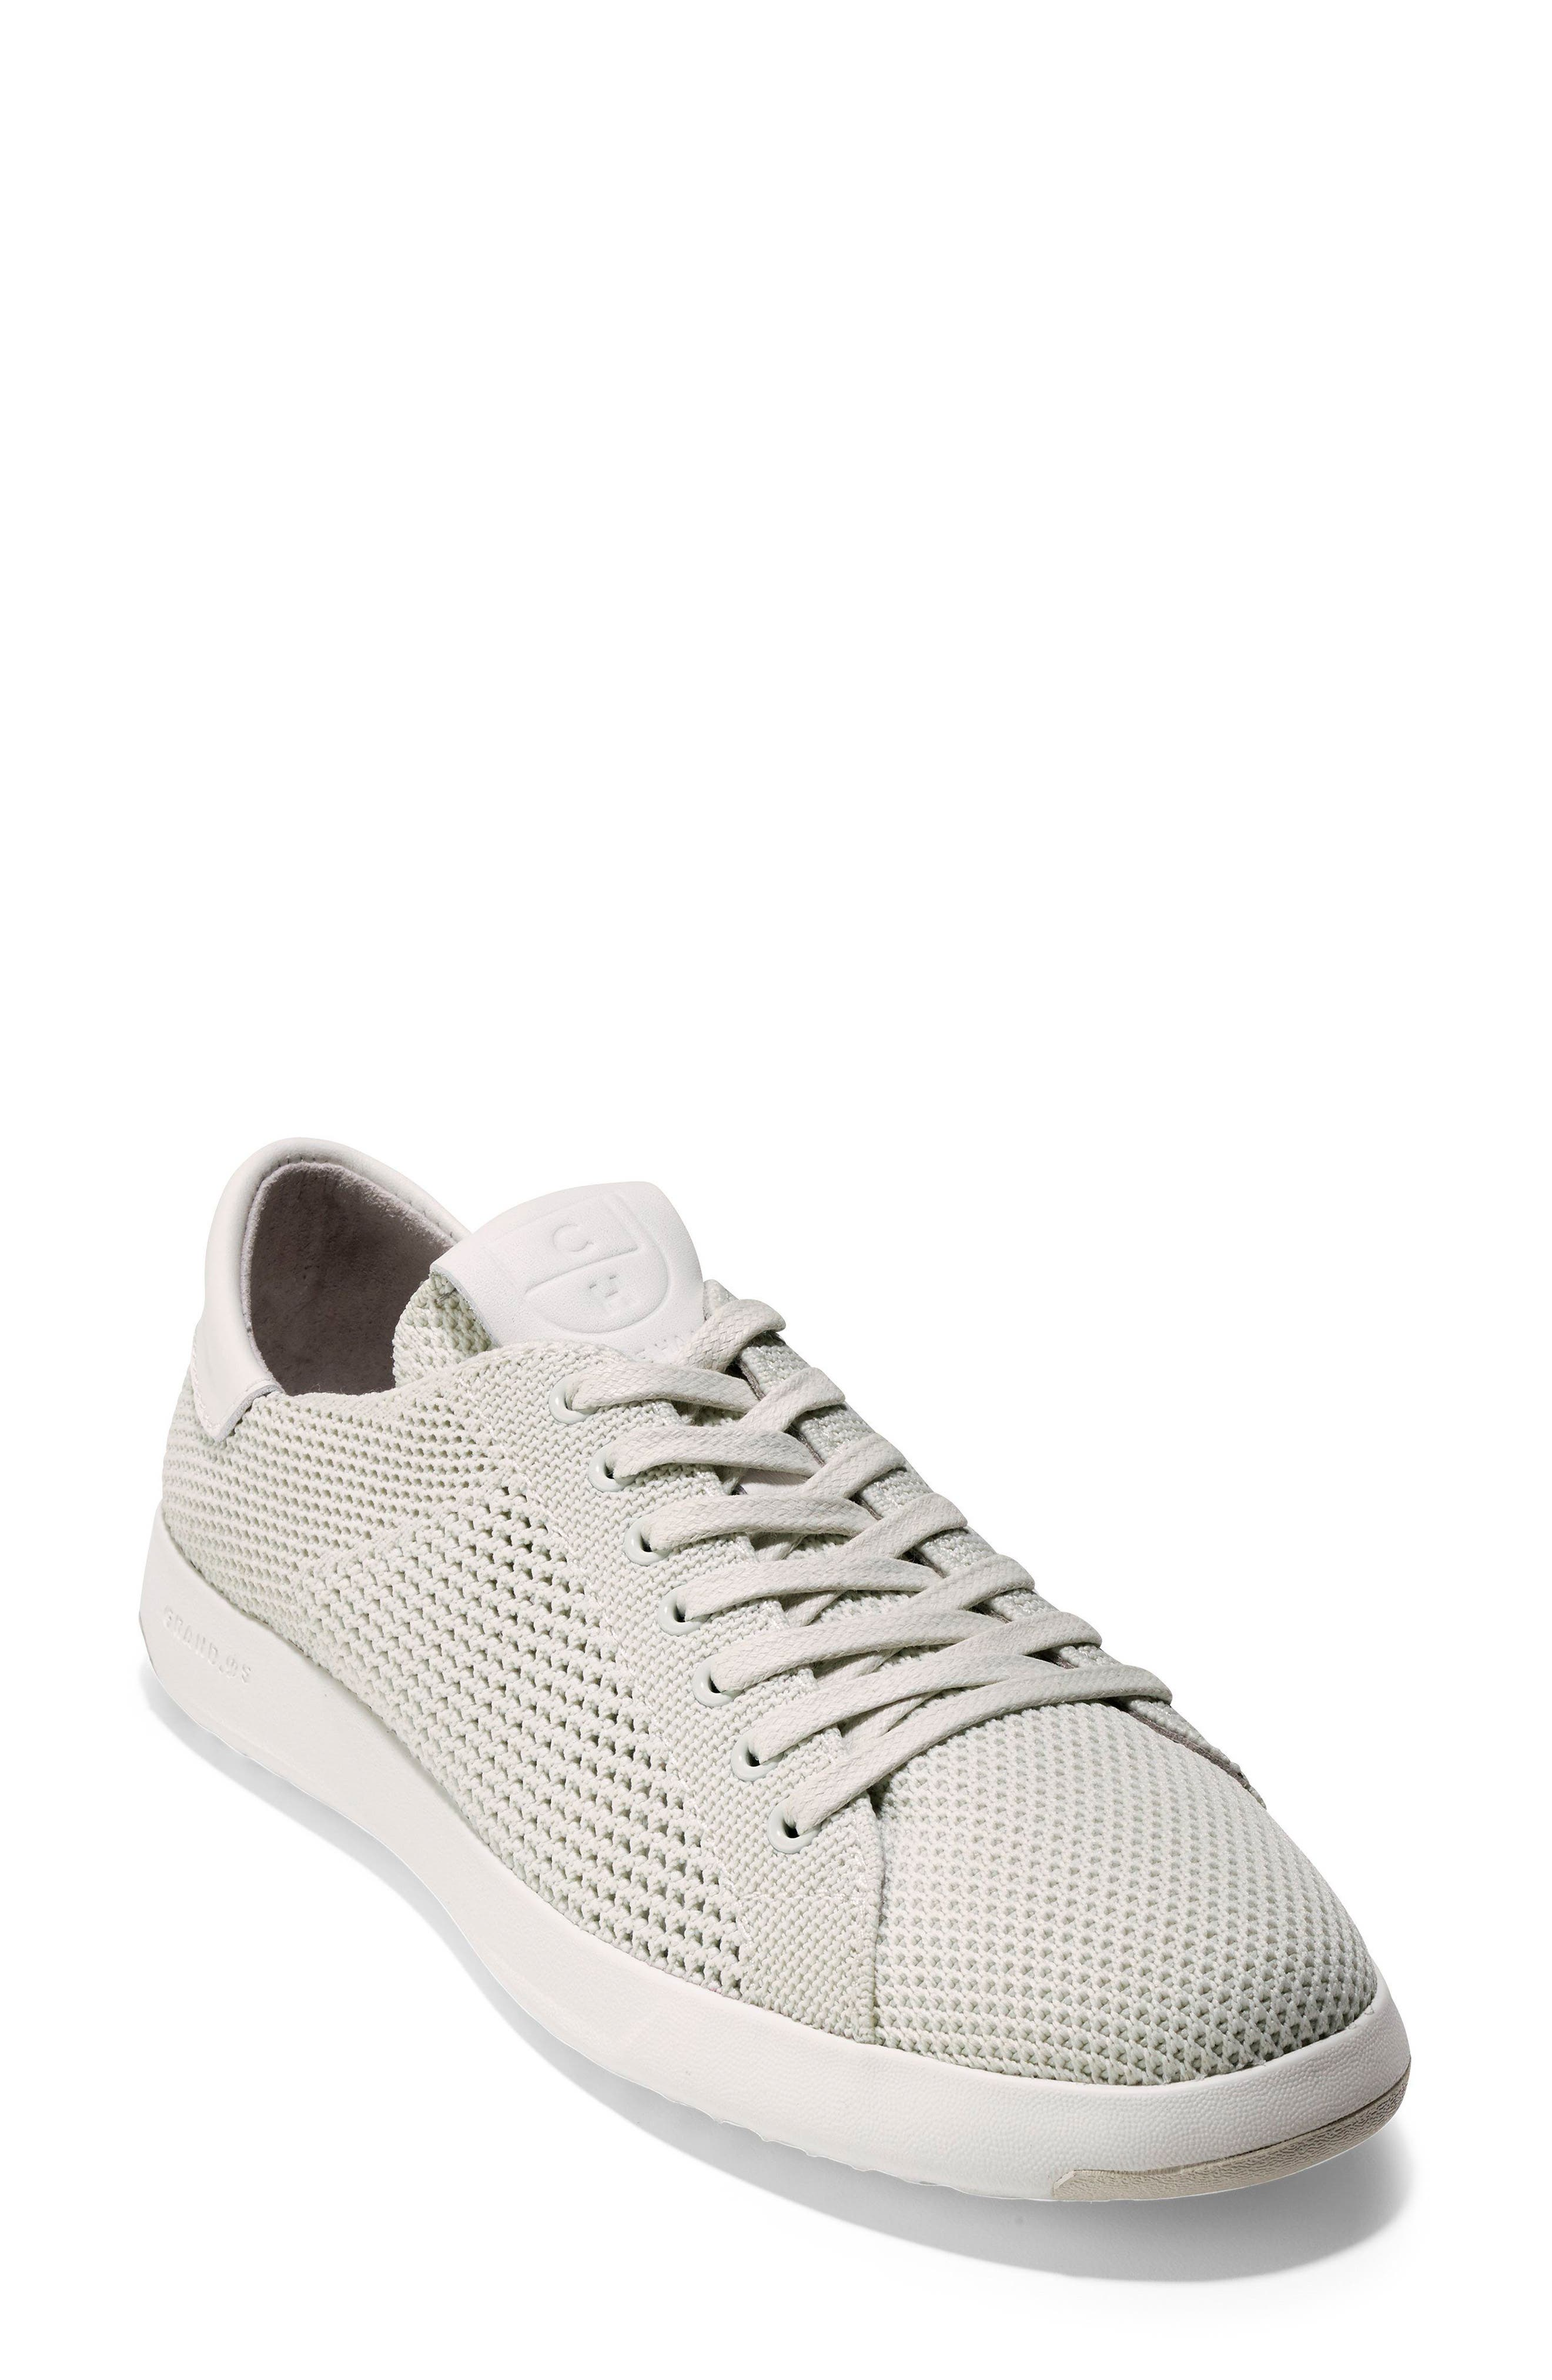 COLE HAAN, GrandPro Stitchlite Sneaker, Main thumbnail 1, color, CHALK FABRIC